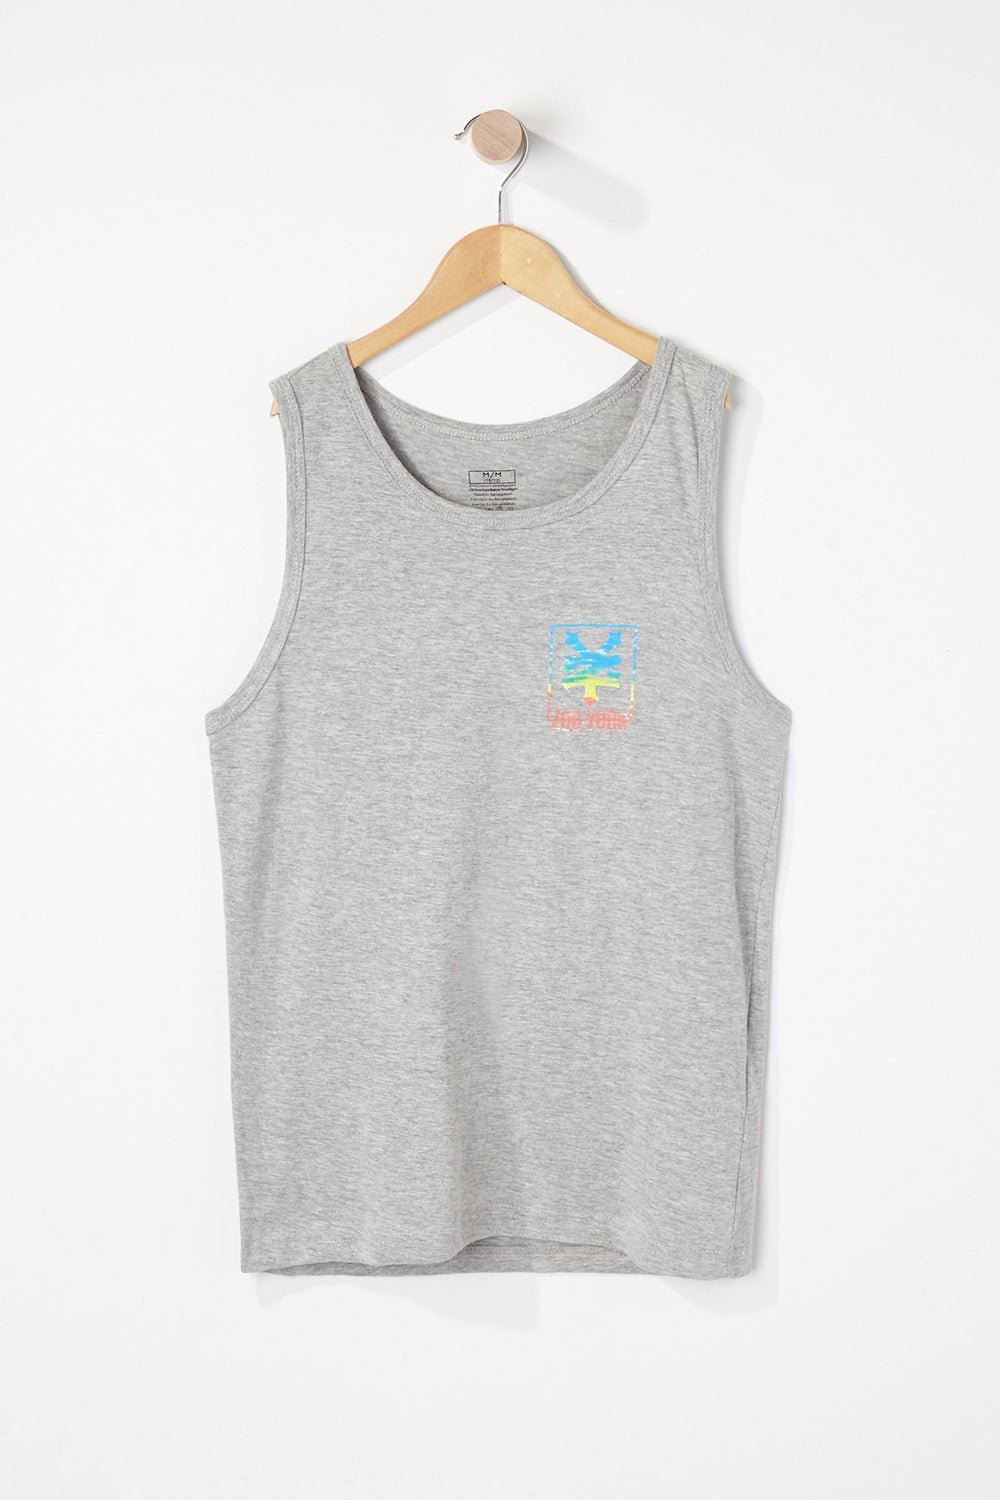 Zoo York Boys Sunset Tank Top Heather Grey